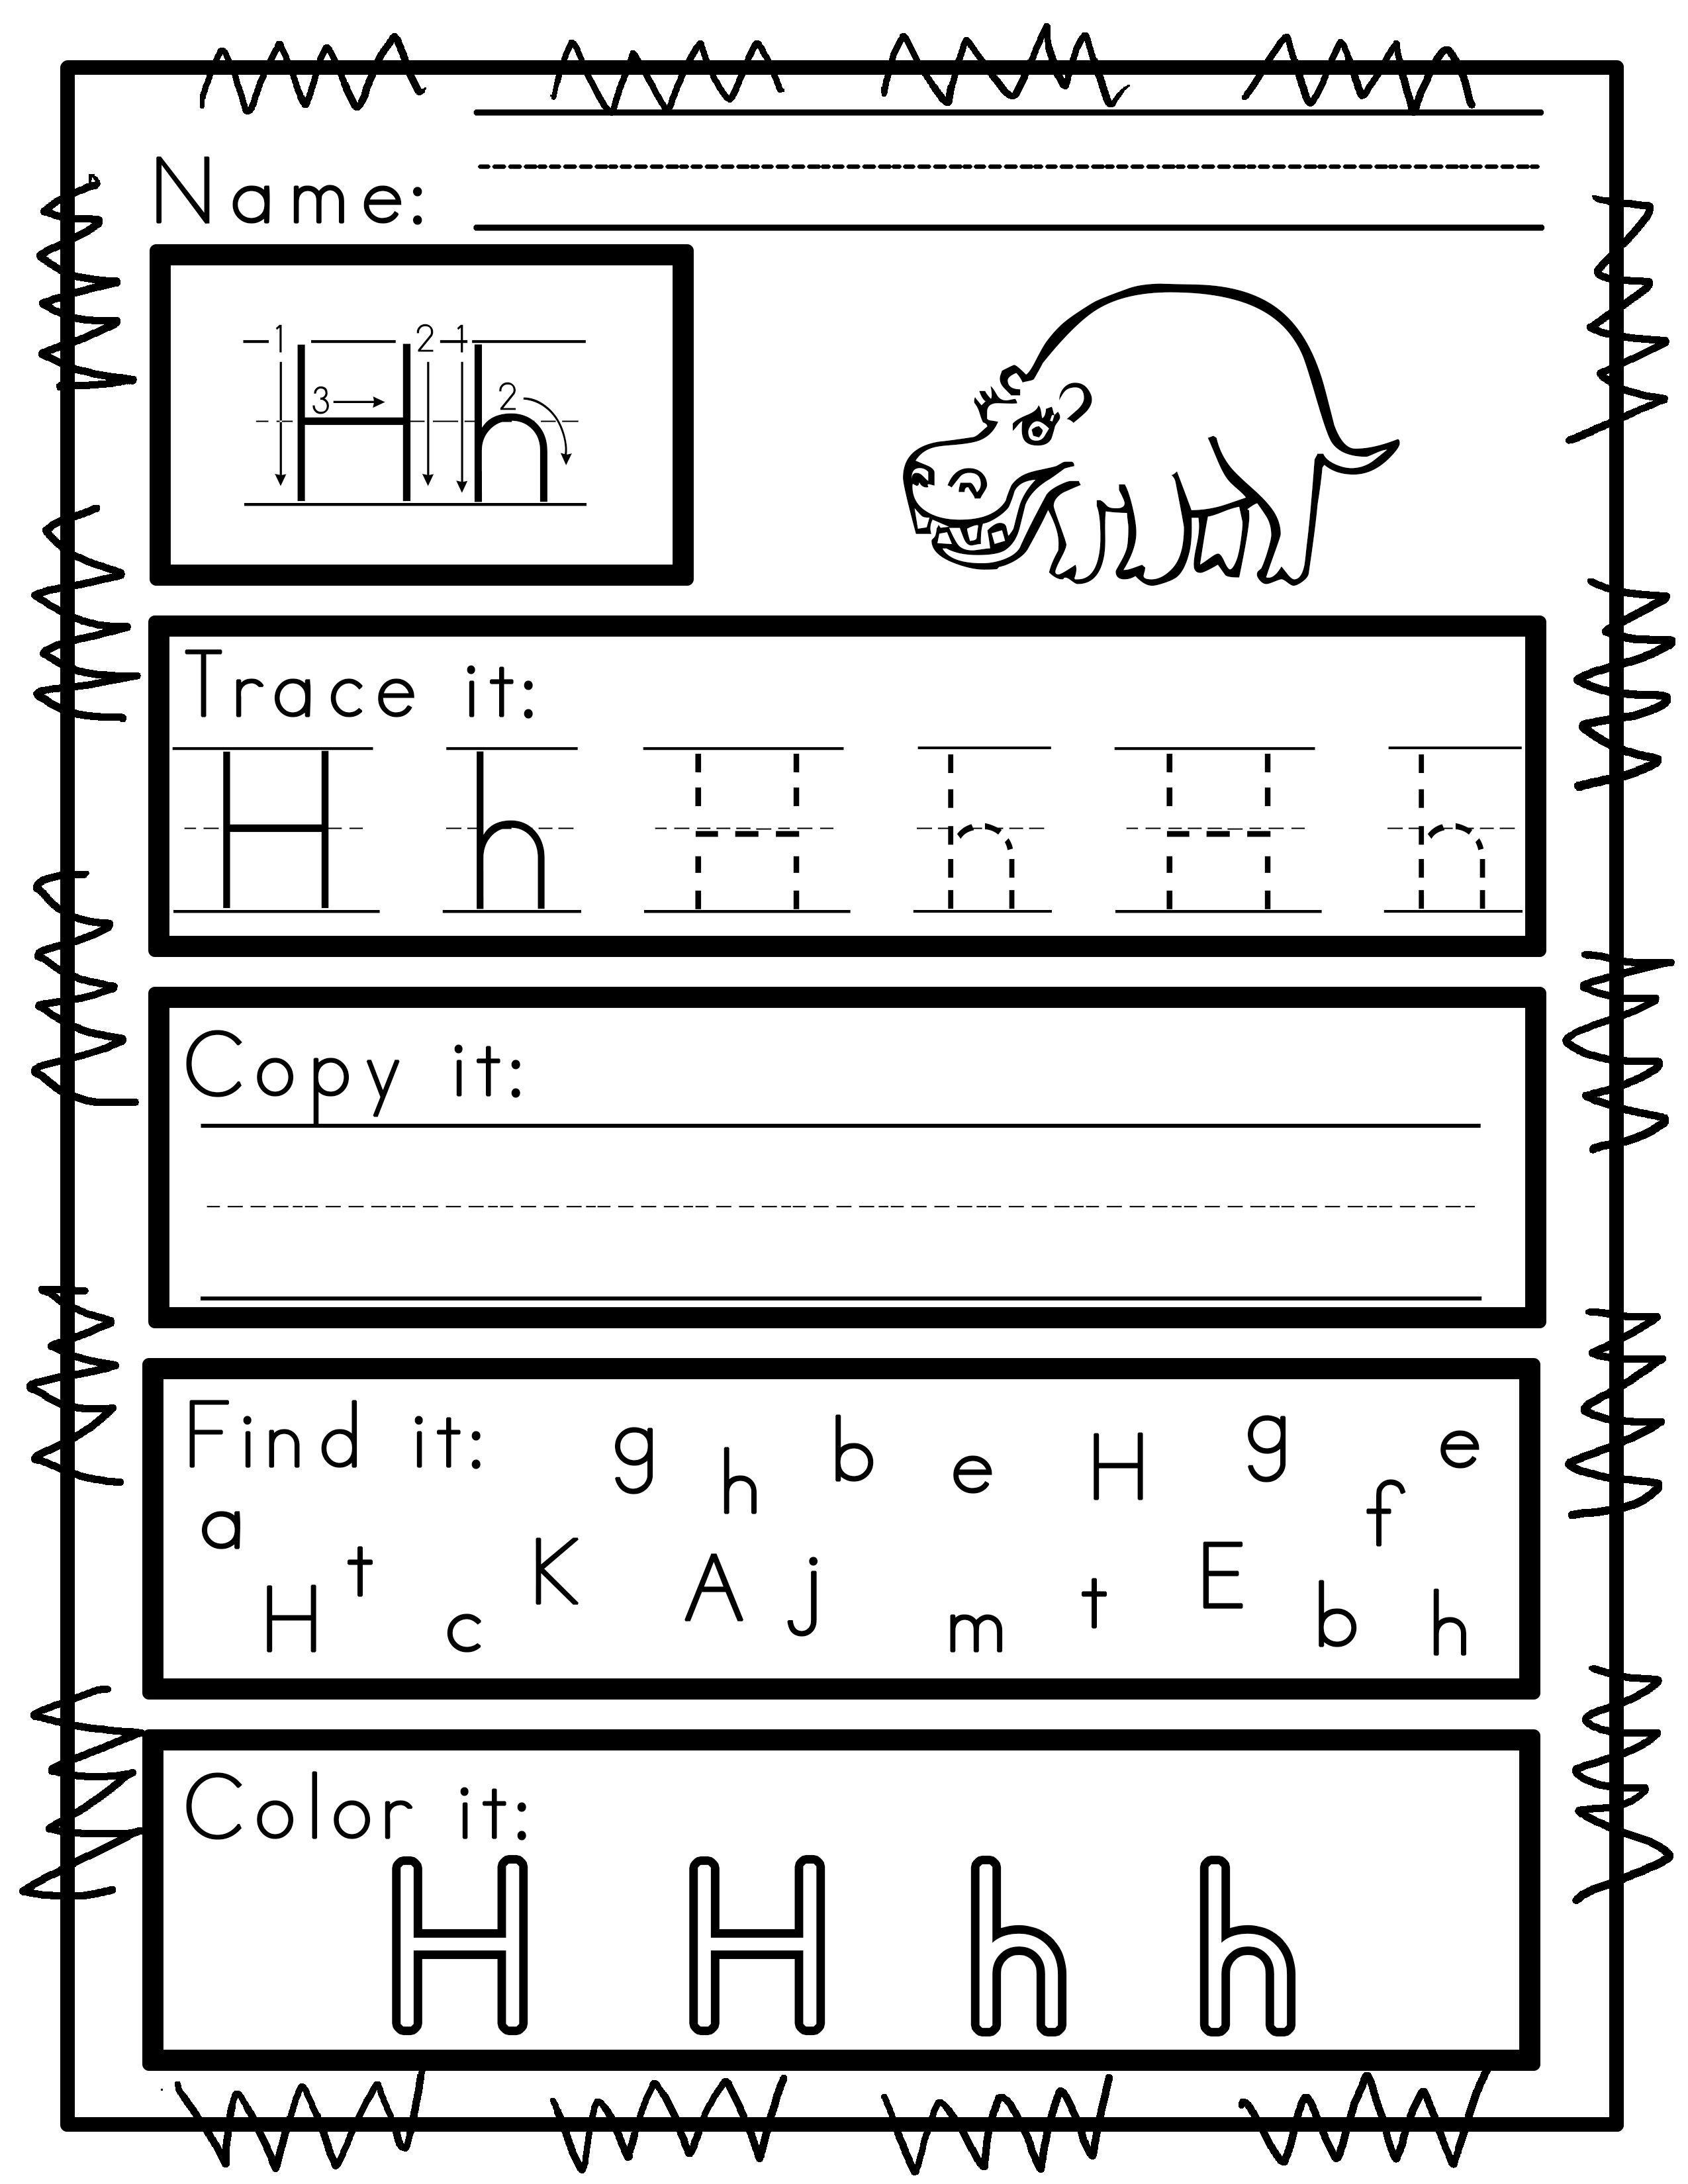 Summerwishes Worksheets For Zaner Bloser Handwriting Practice Handwriting Practice Handwriting Practice Worksheets Cursive Handwriting Practice